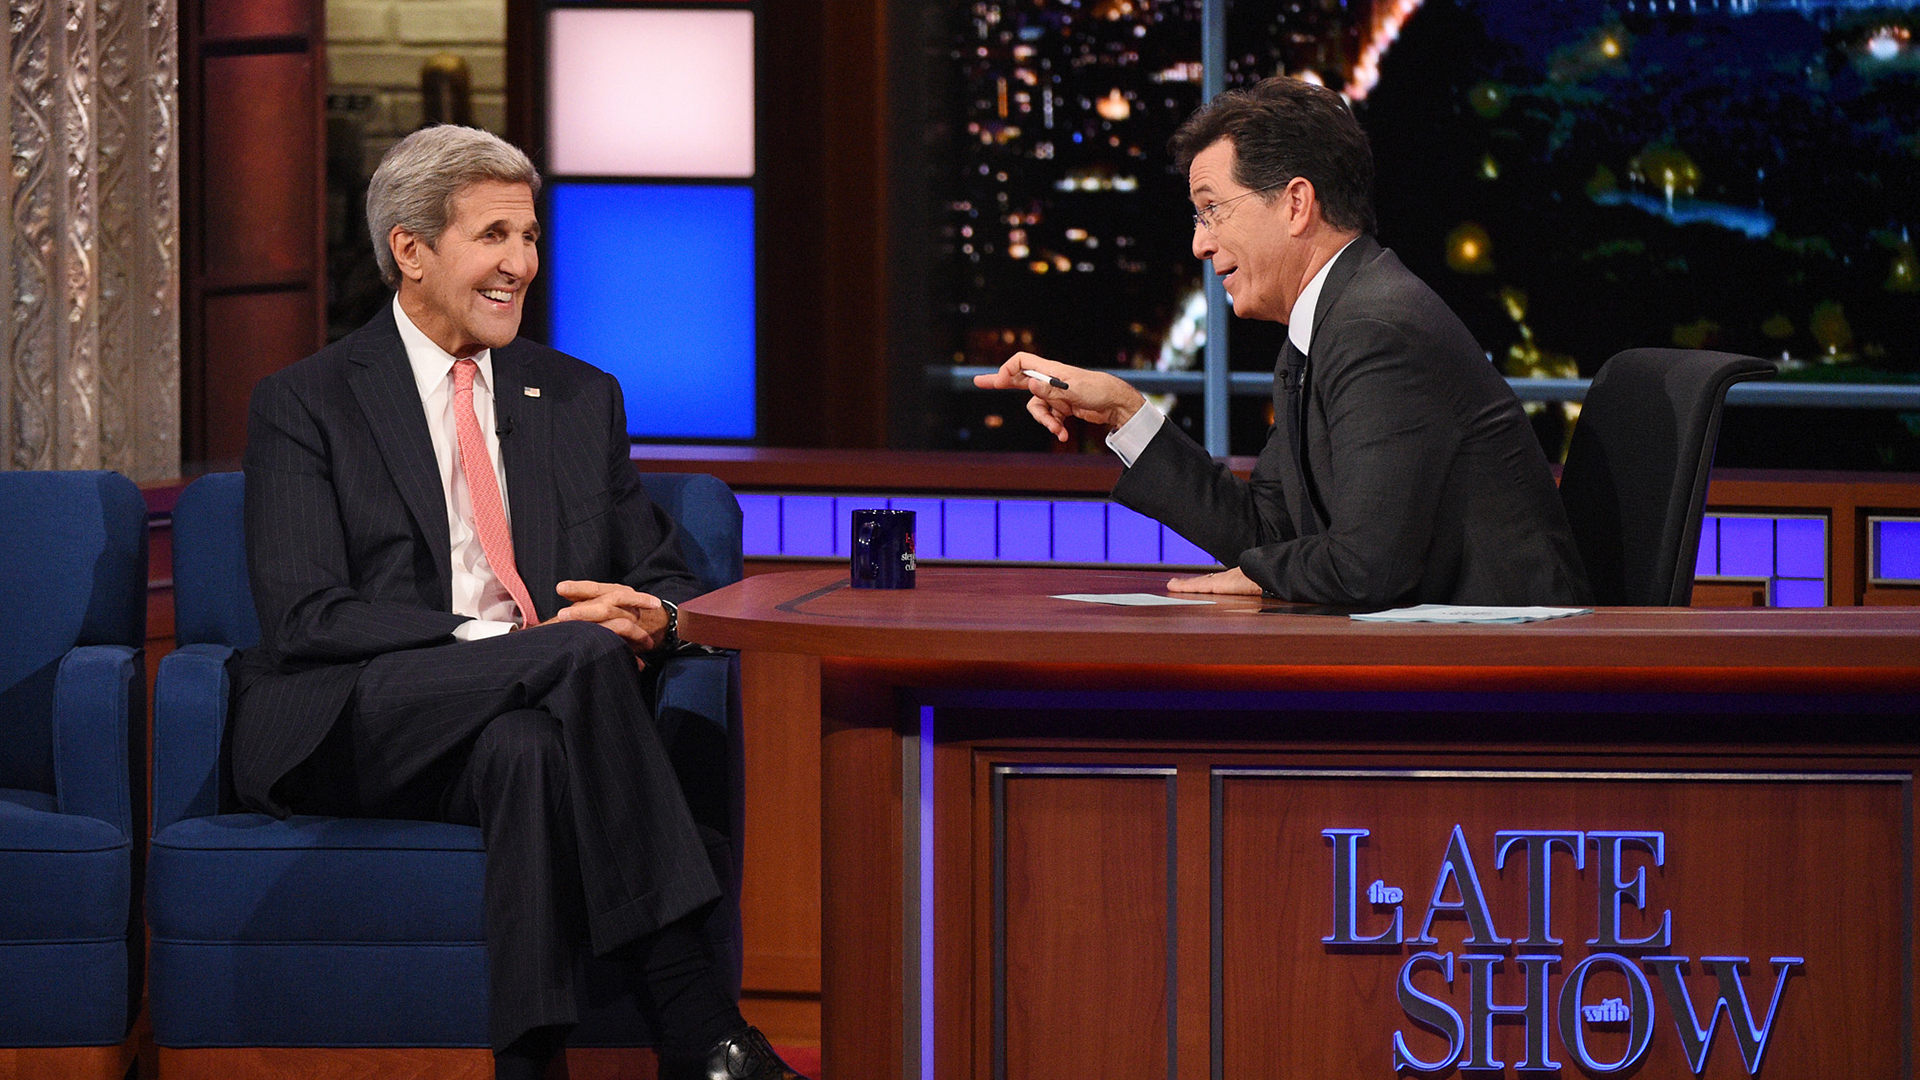 John Kerry and Stephen Colbert